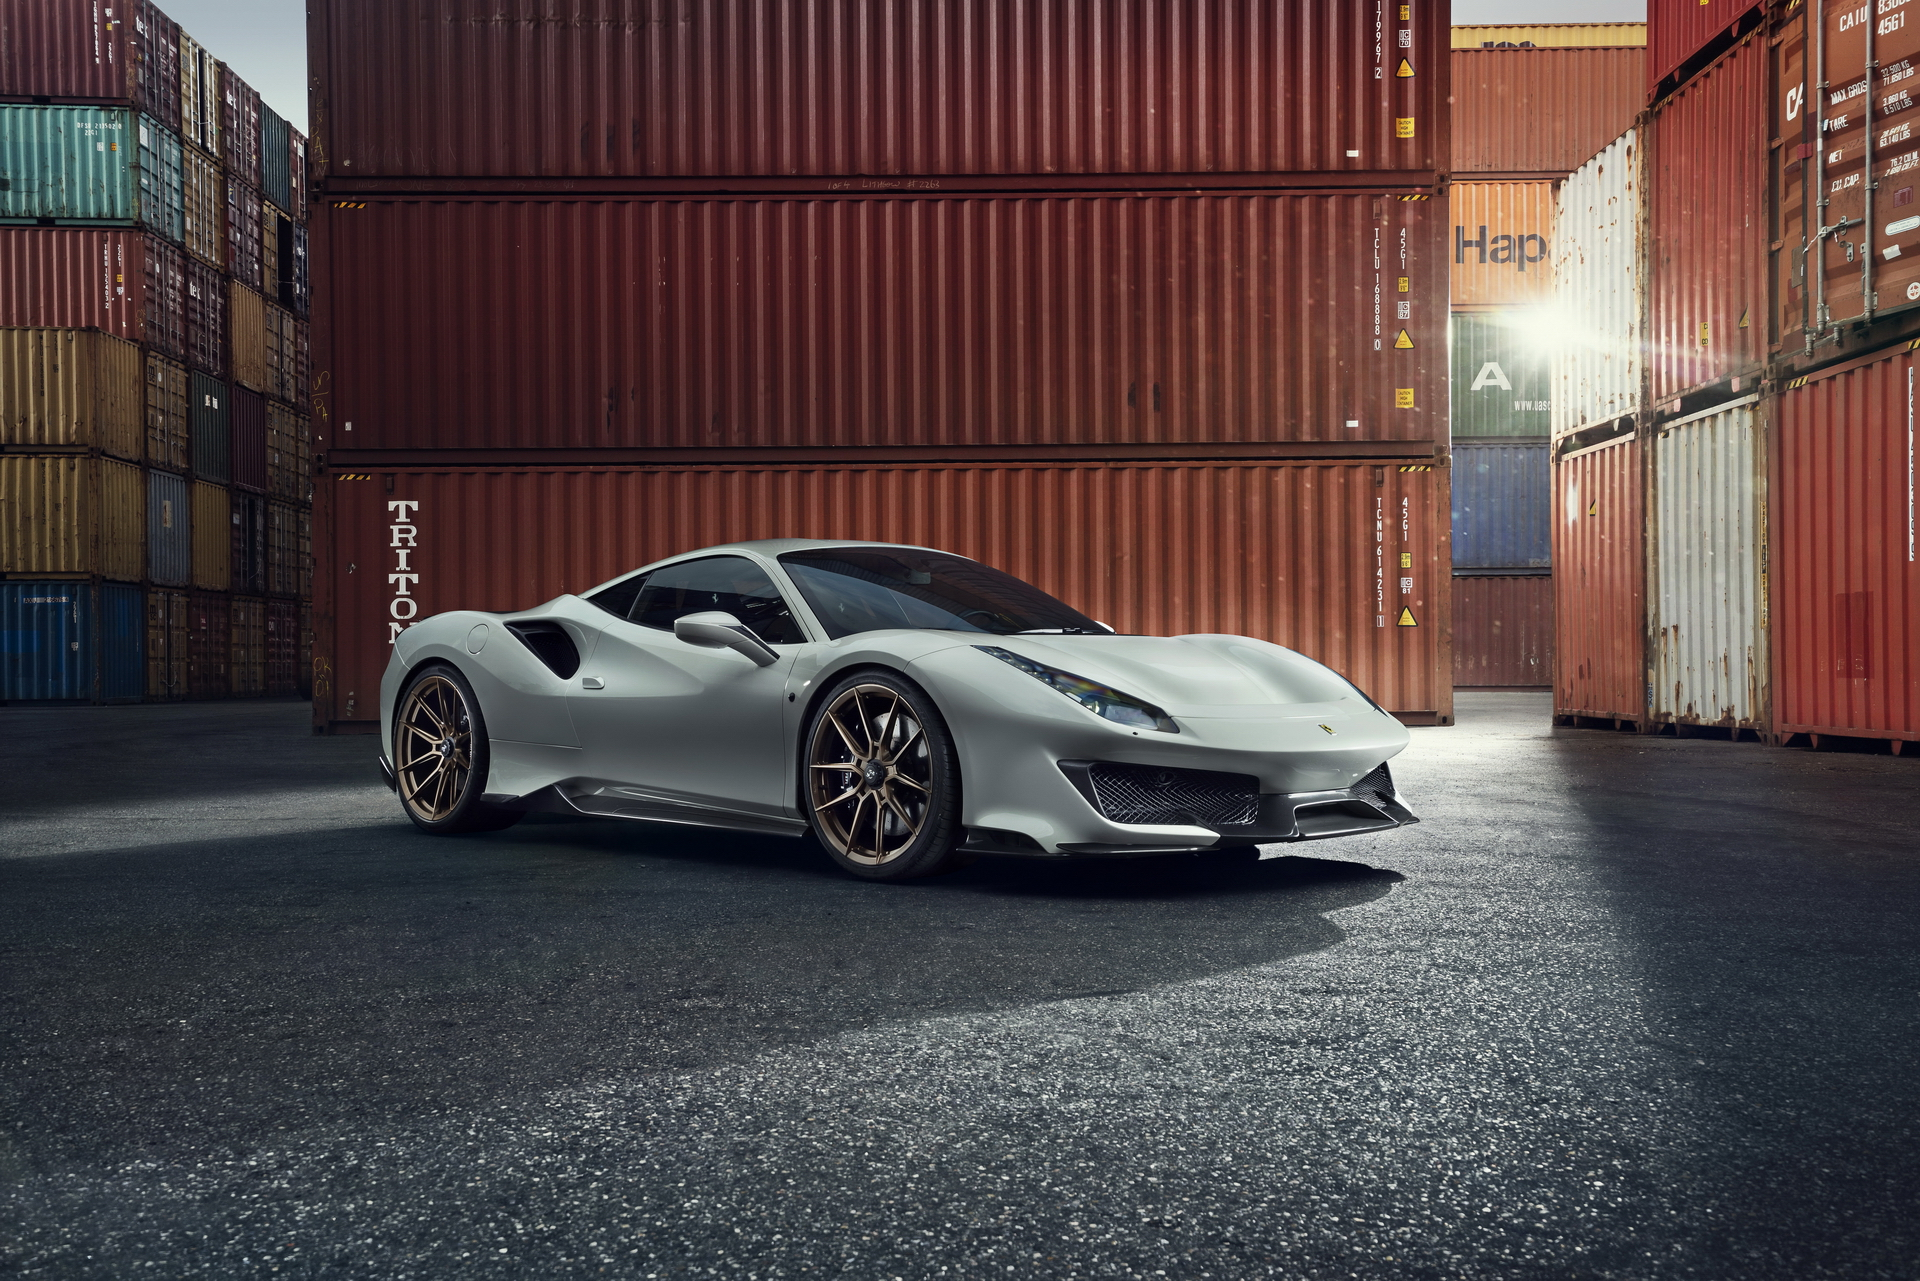 Renowned German car tuner Novitec has launched a range of upgrades for the Ferrari 488 Pista. Let us see what is on offer for those who are able to afford the Italian automotive's finest.